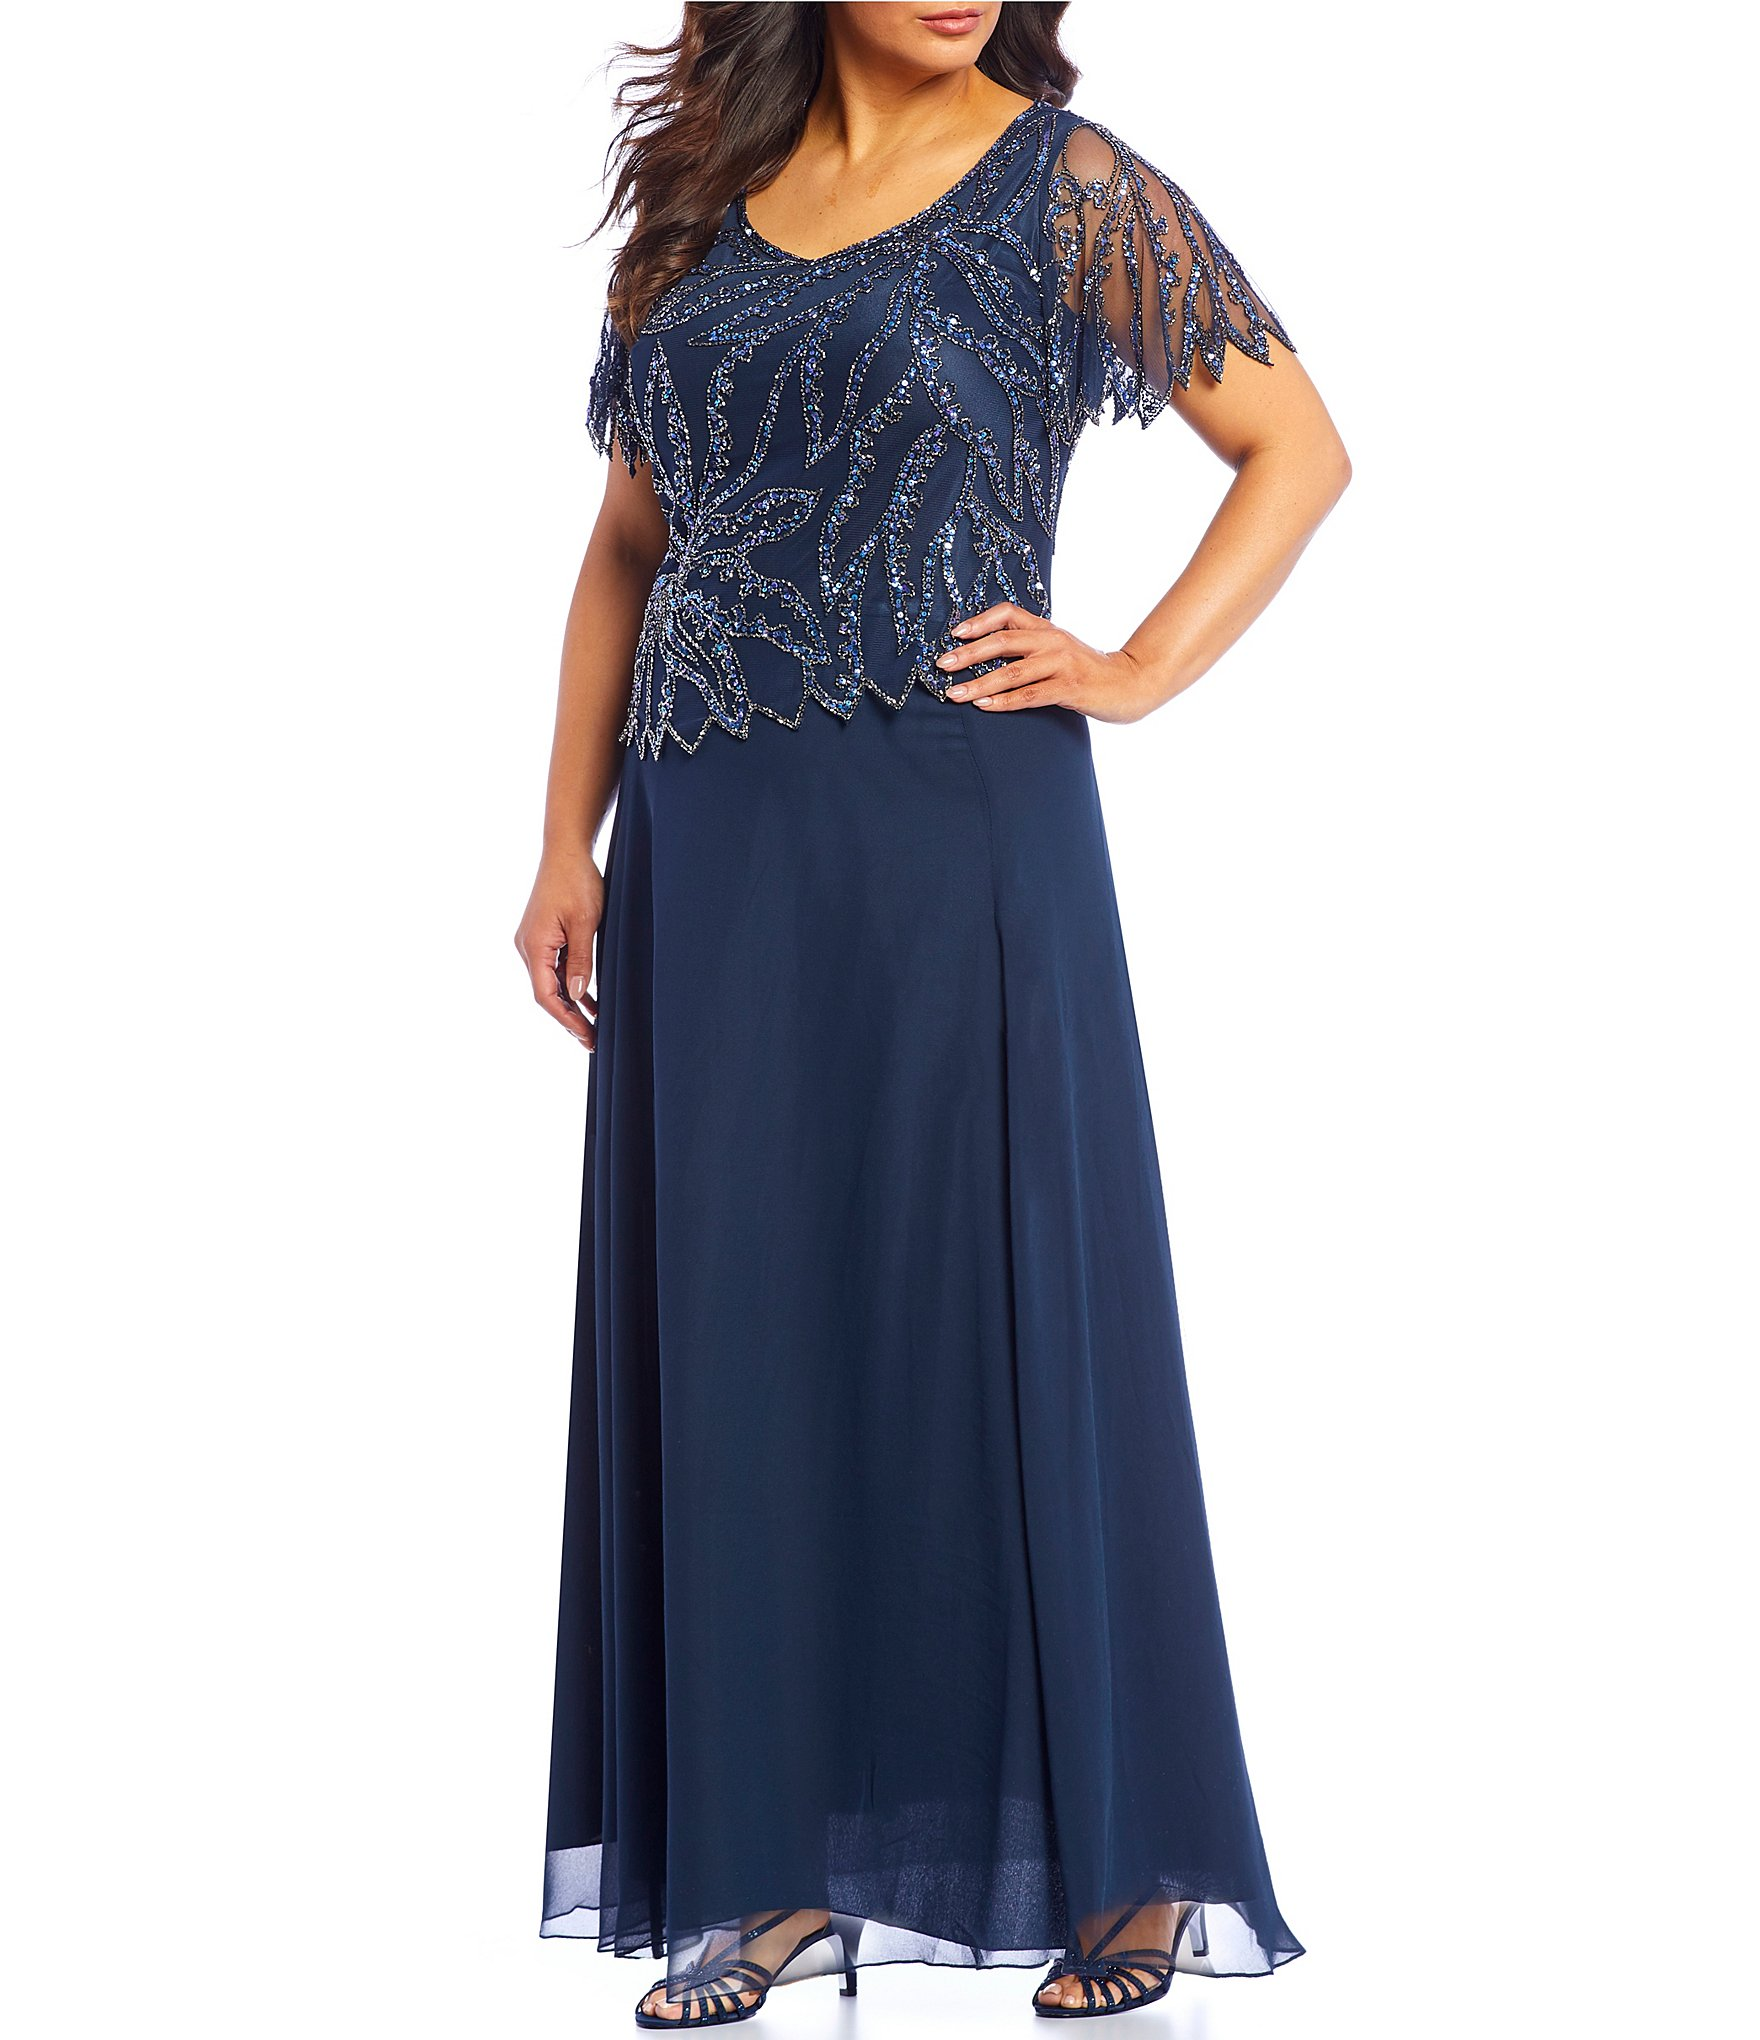 Jkara Plus Size Beaded Short Sleeve Long Gown